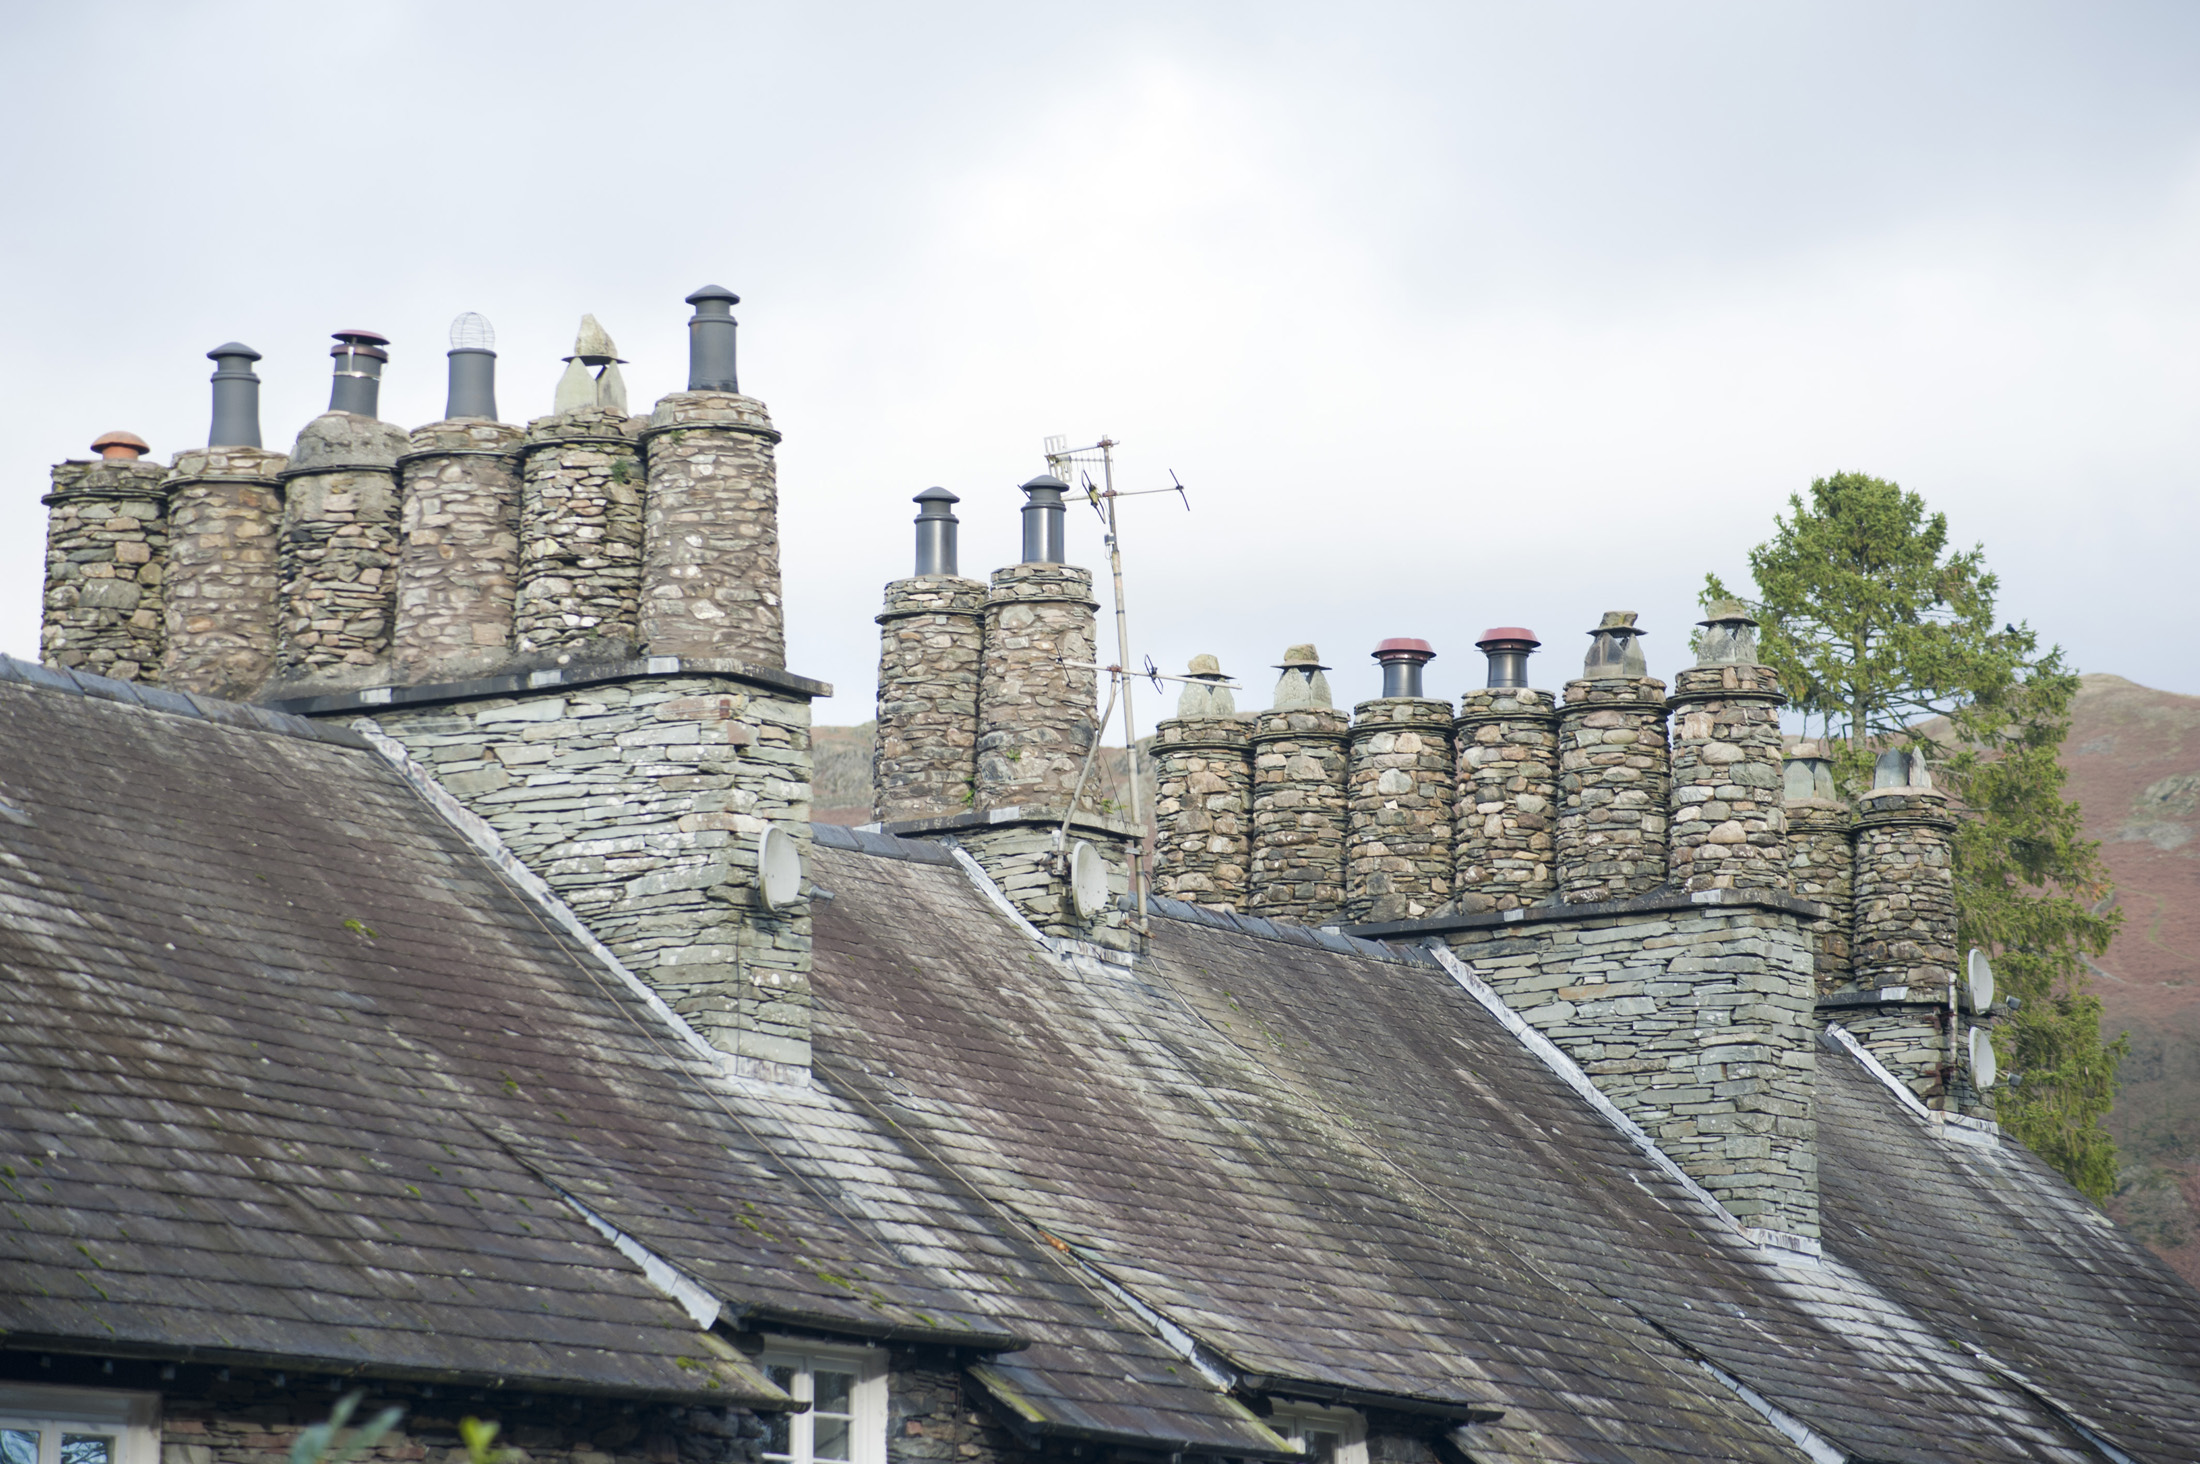 Roofs and traditional cylindrical chimney pots constructed of stone on Cumbrian cottages in the Lake District